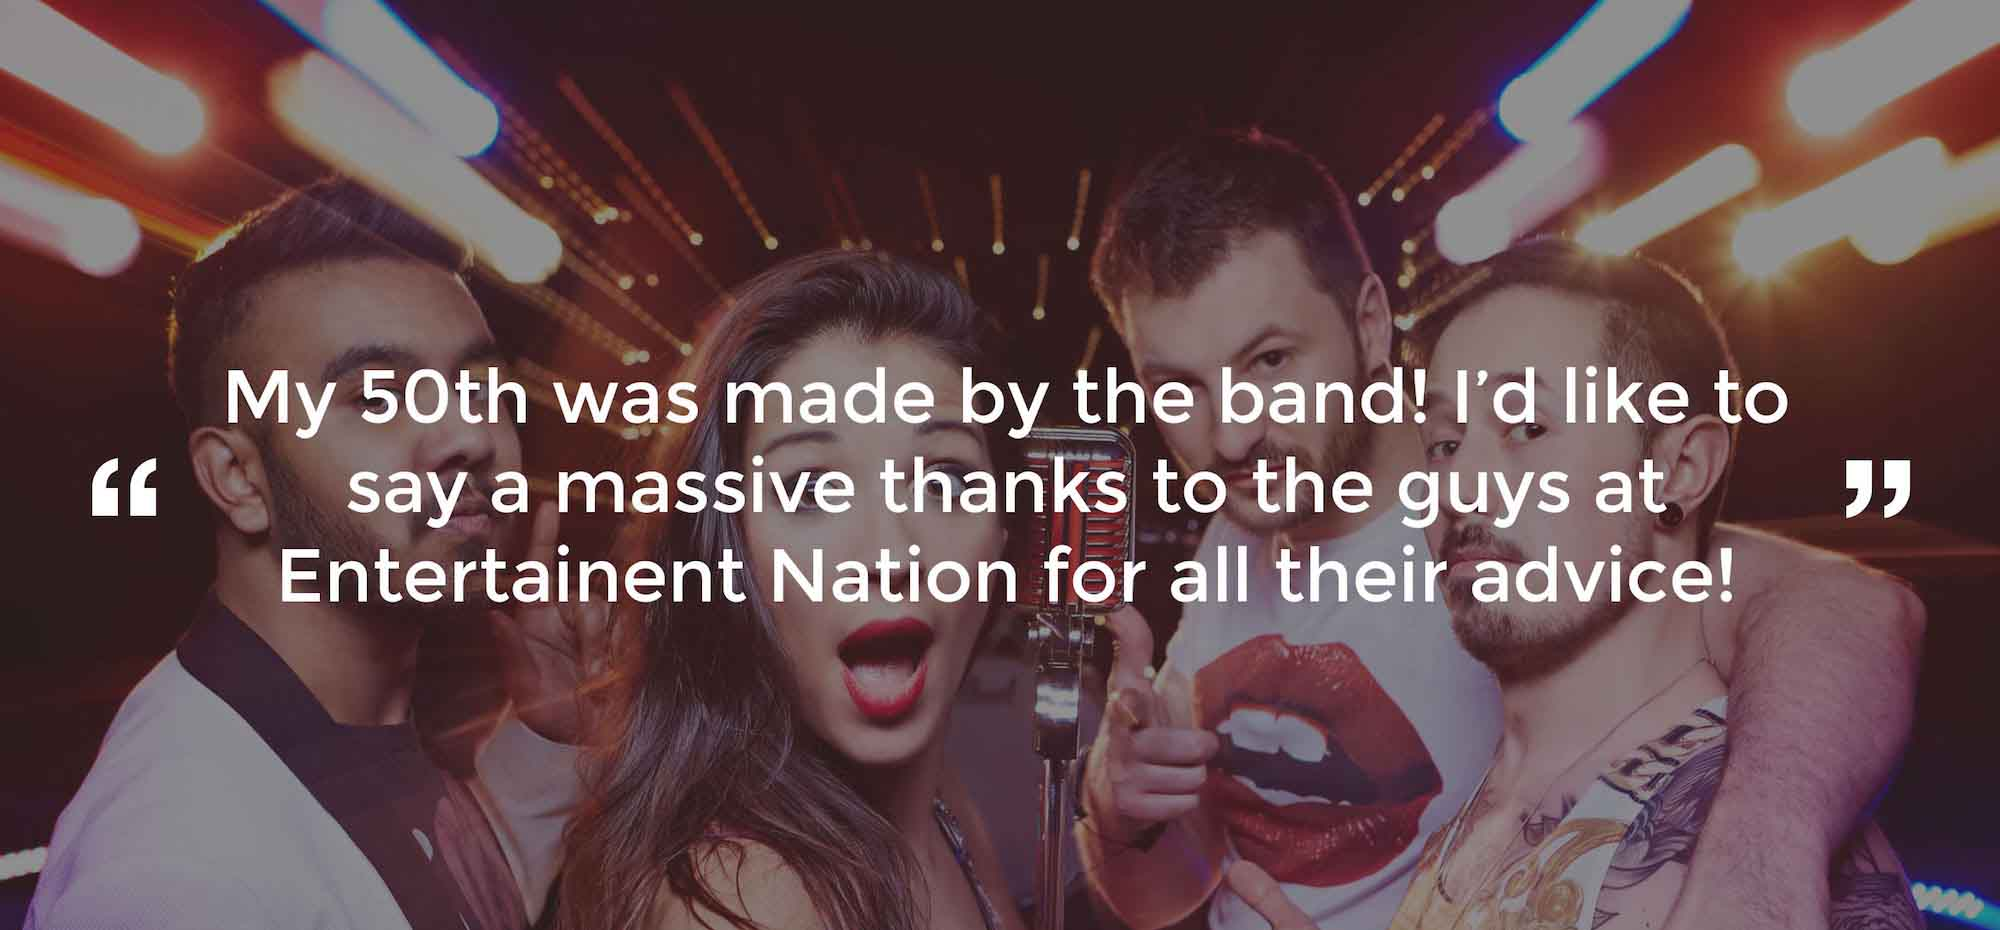 Client Review of a Party Band Cleveland